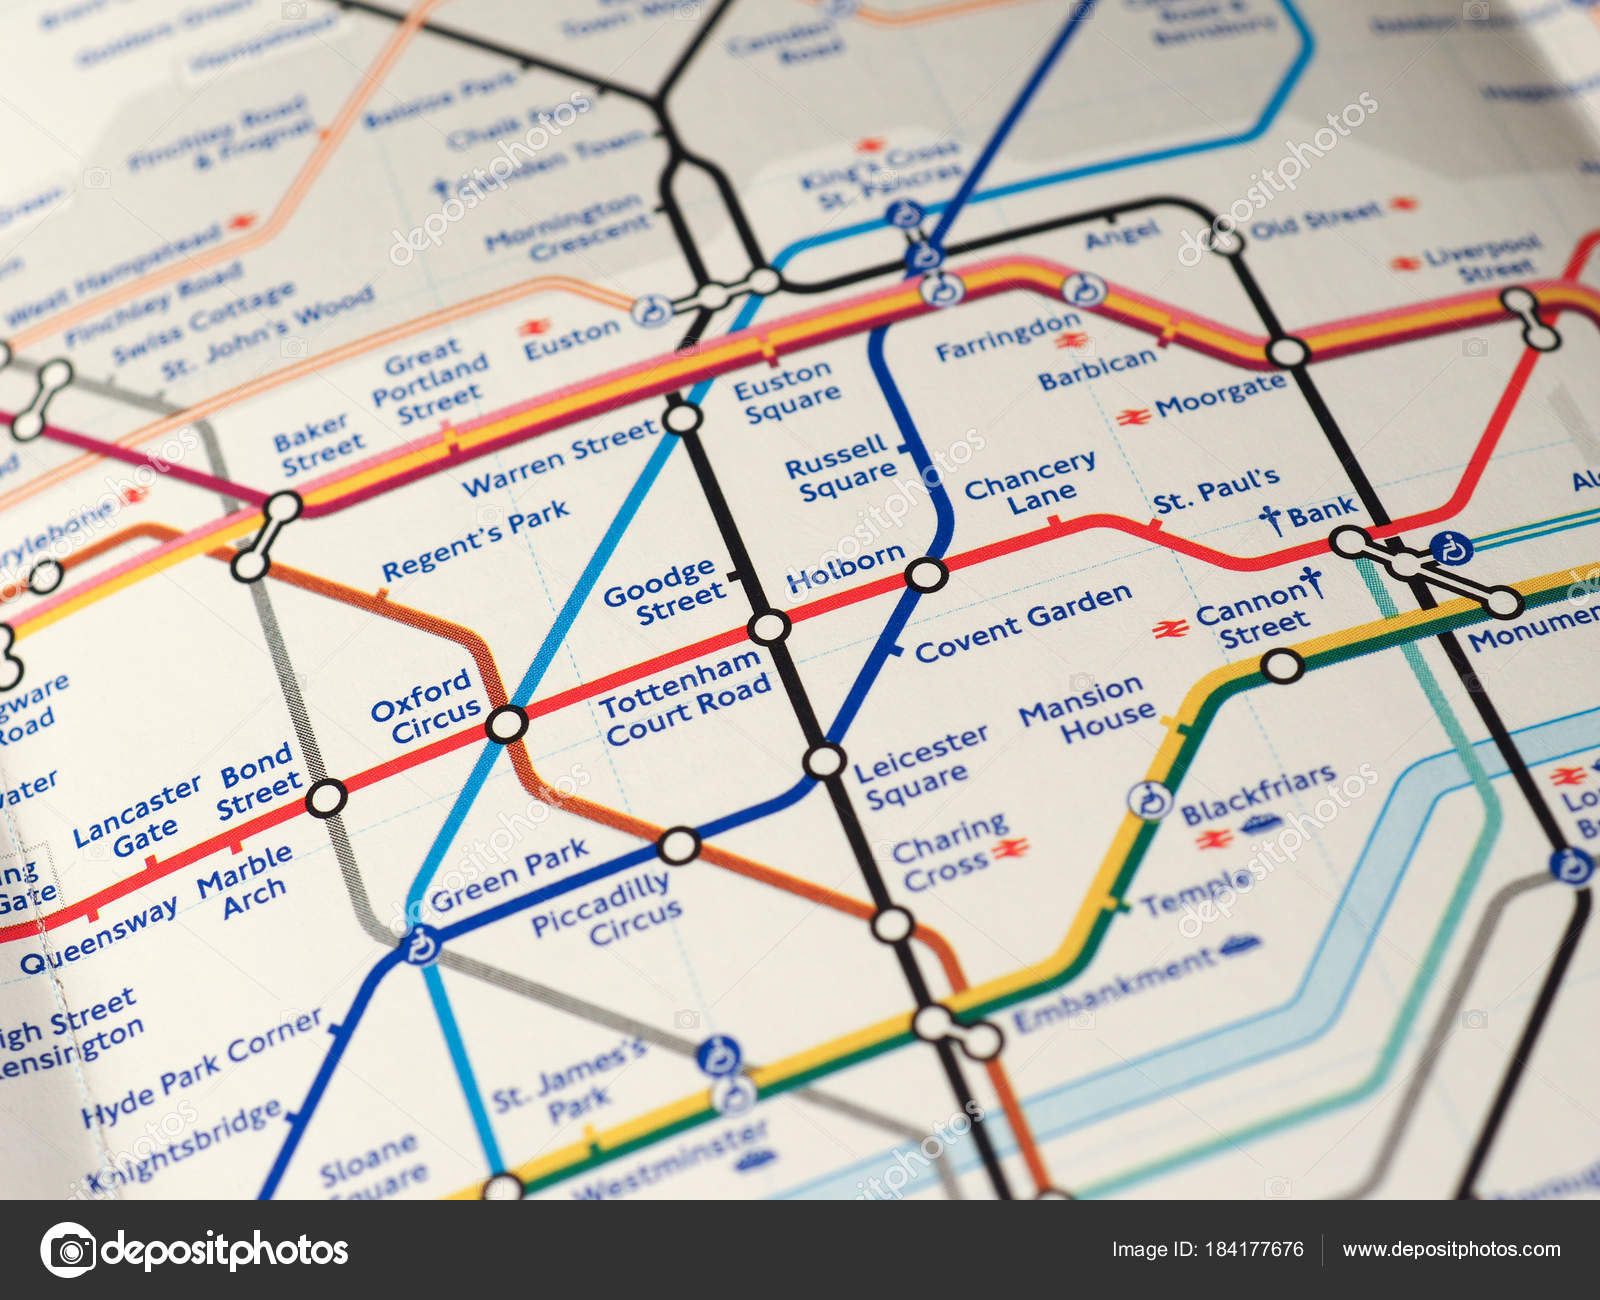 London Stations Map.Map Of London Underground Stock Photo C Claudiodivizia 184177676